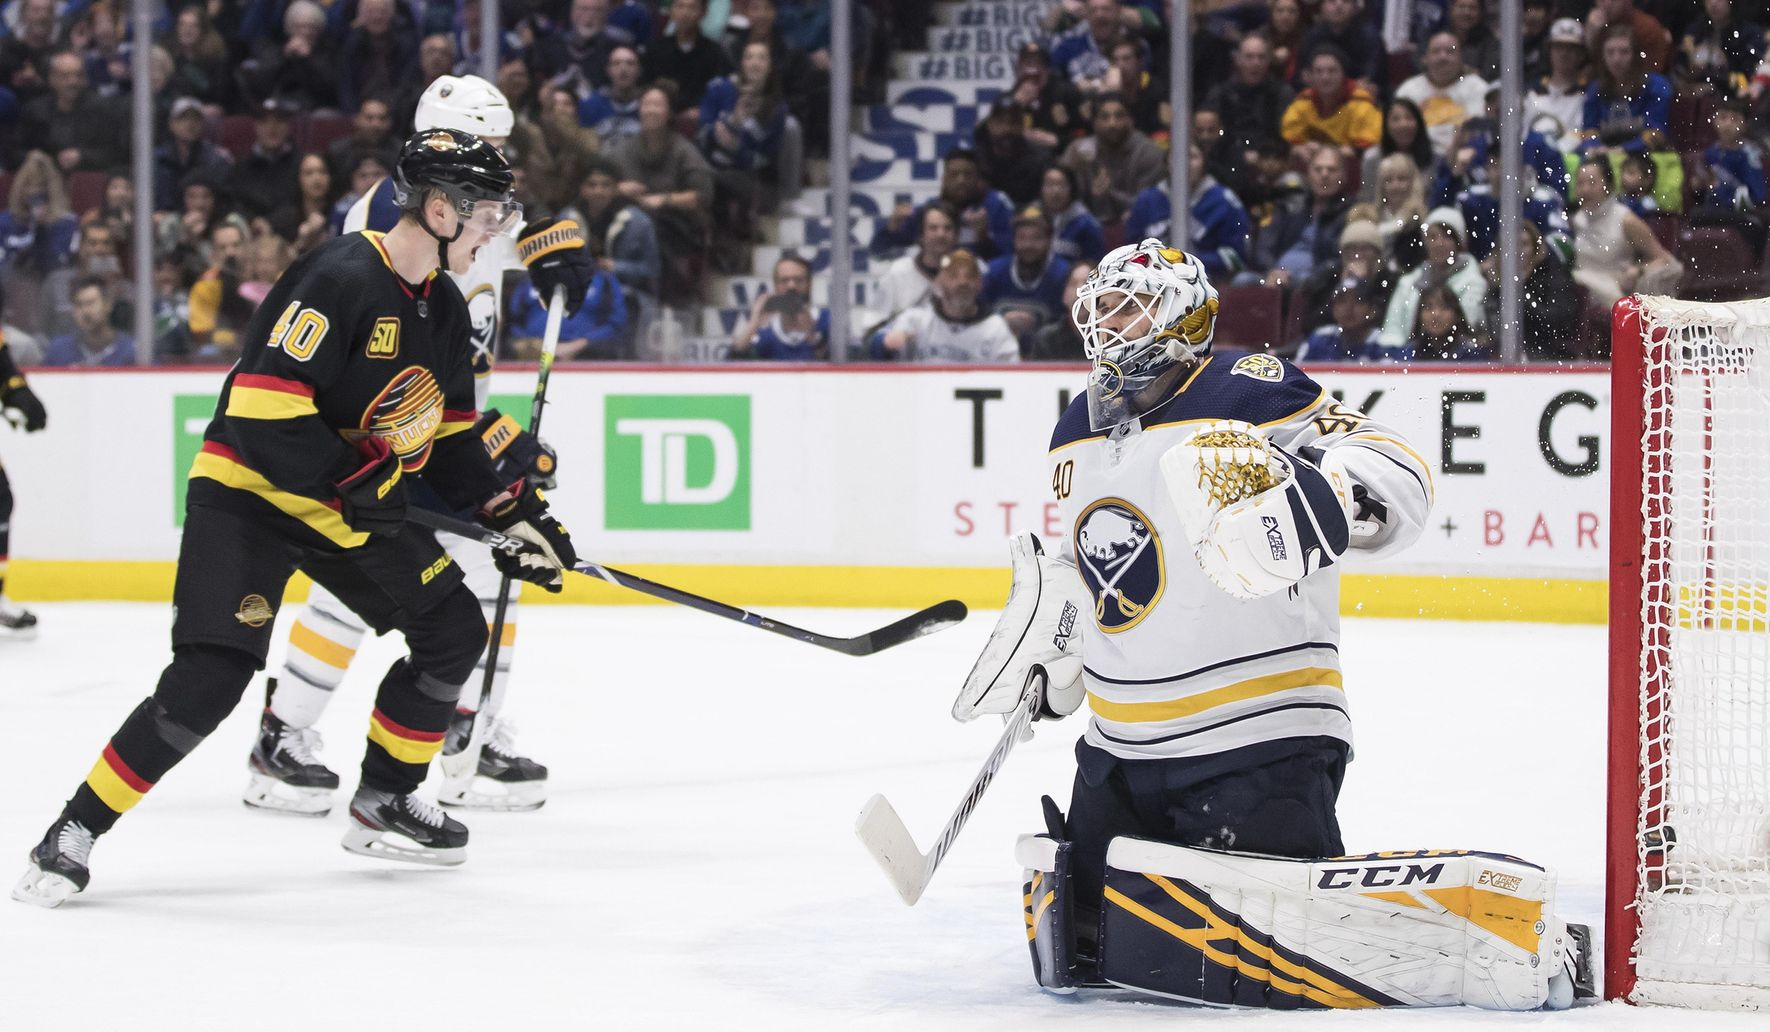 Sabres_canucks_hockey_18320_c0-272-5000-3187_s1770x1032